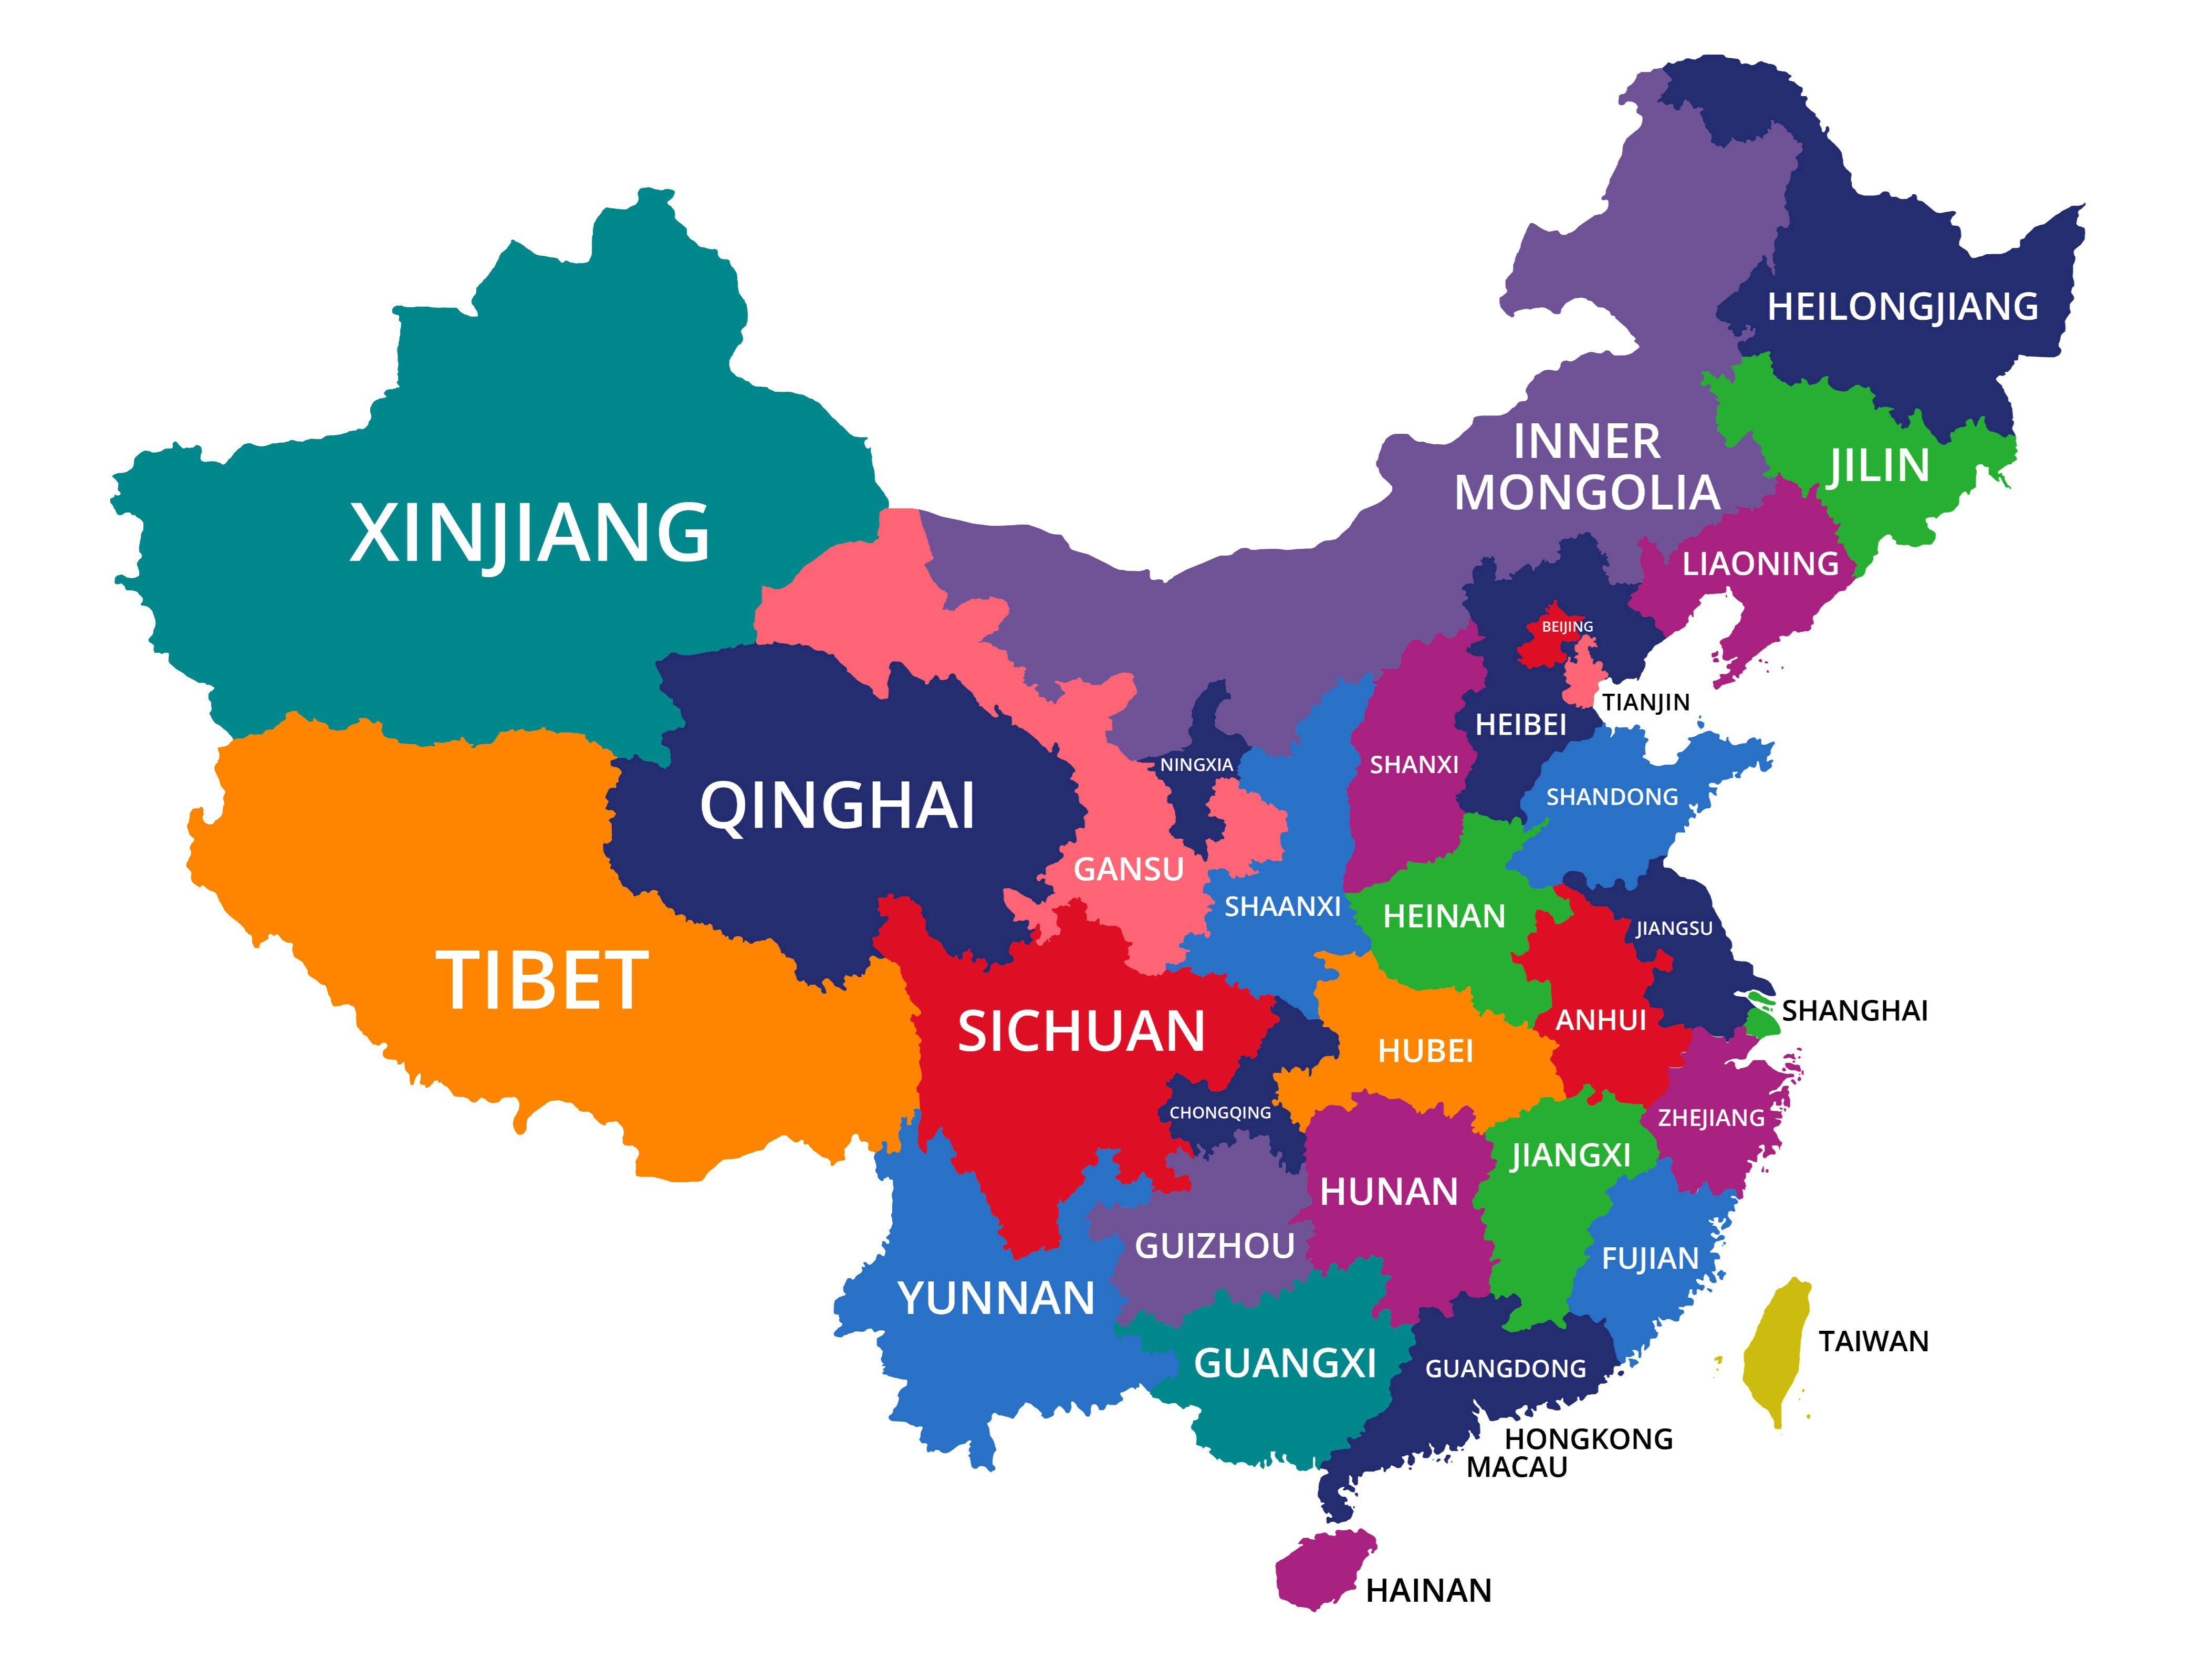 beijing in china map The 23 Provinces In The Country Of China beijing in china map